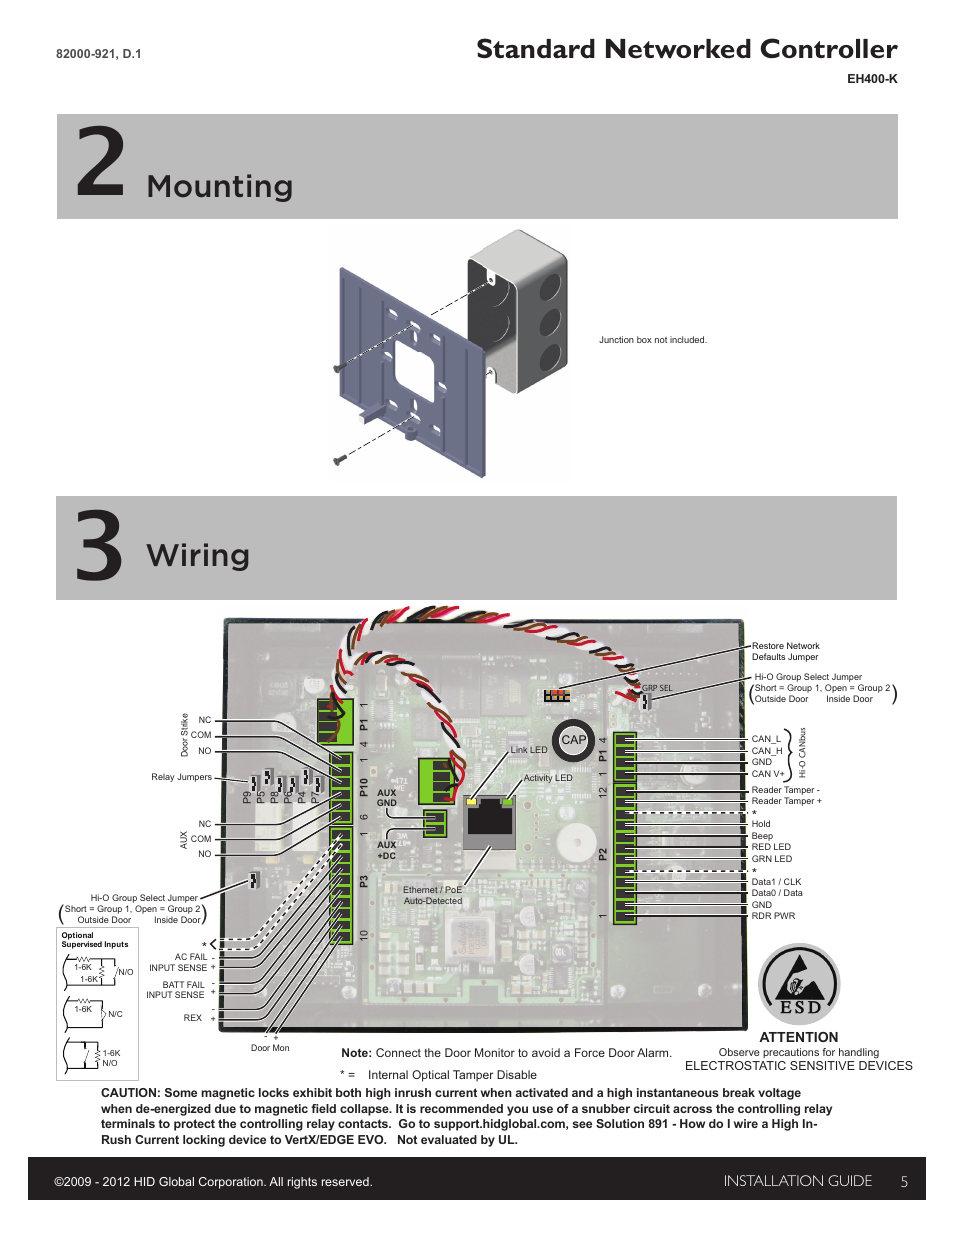 hid edge evo solo esh400 k networked controller installation guide page5 hid edge evo wiring diagram edge evo edwm m \u2022 wiring diagrams j H13 HID Relay Wiring Diagram at n-0.co